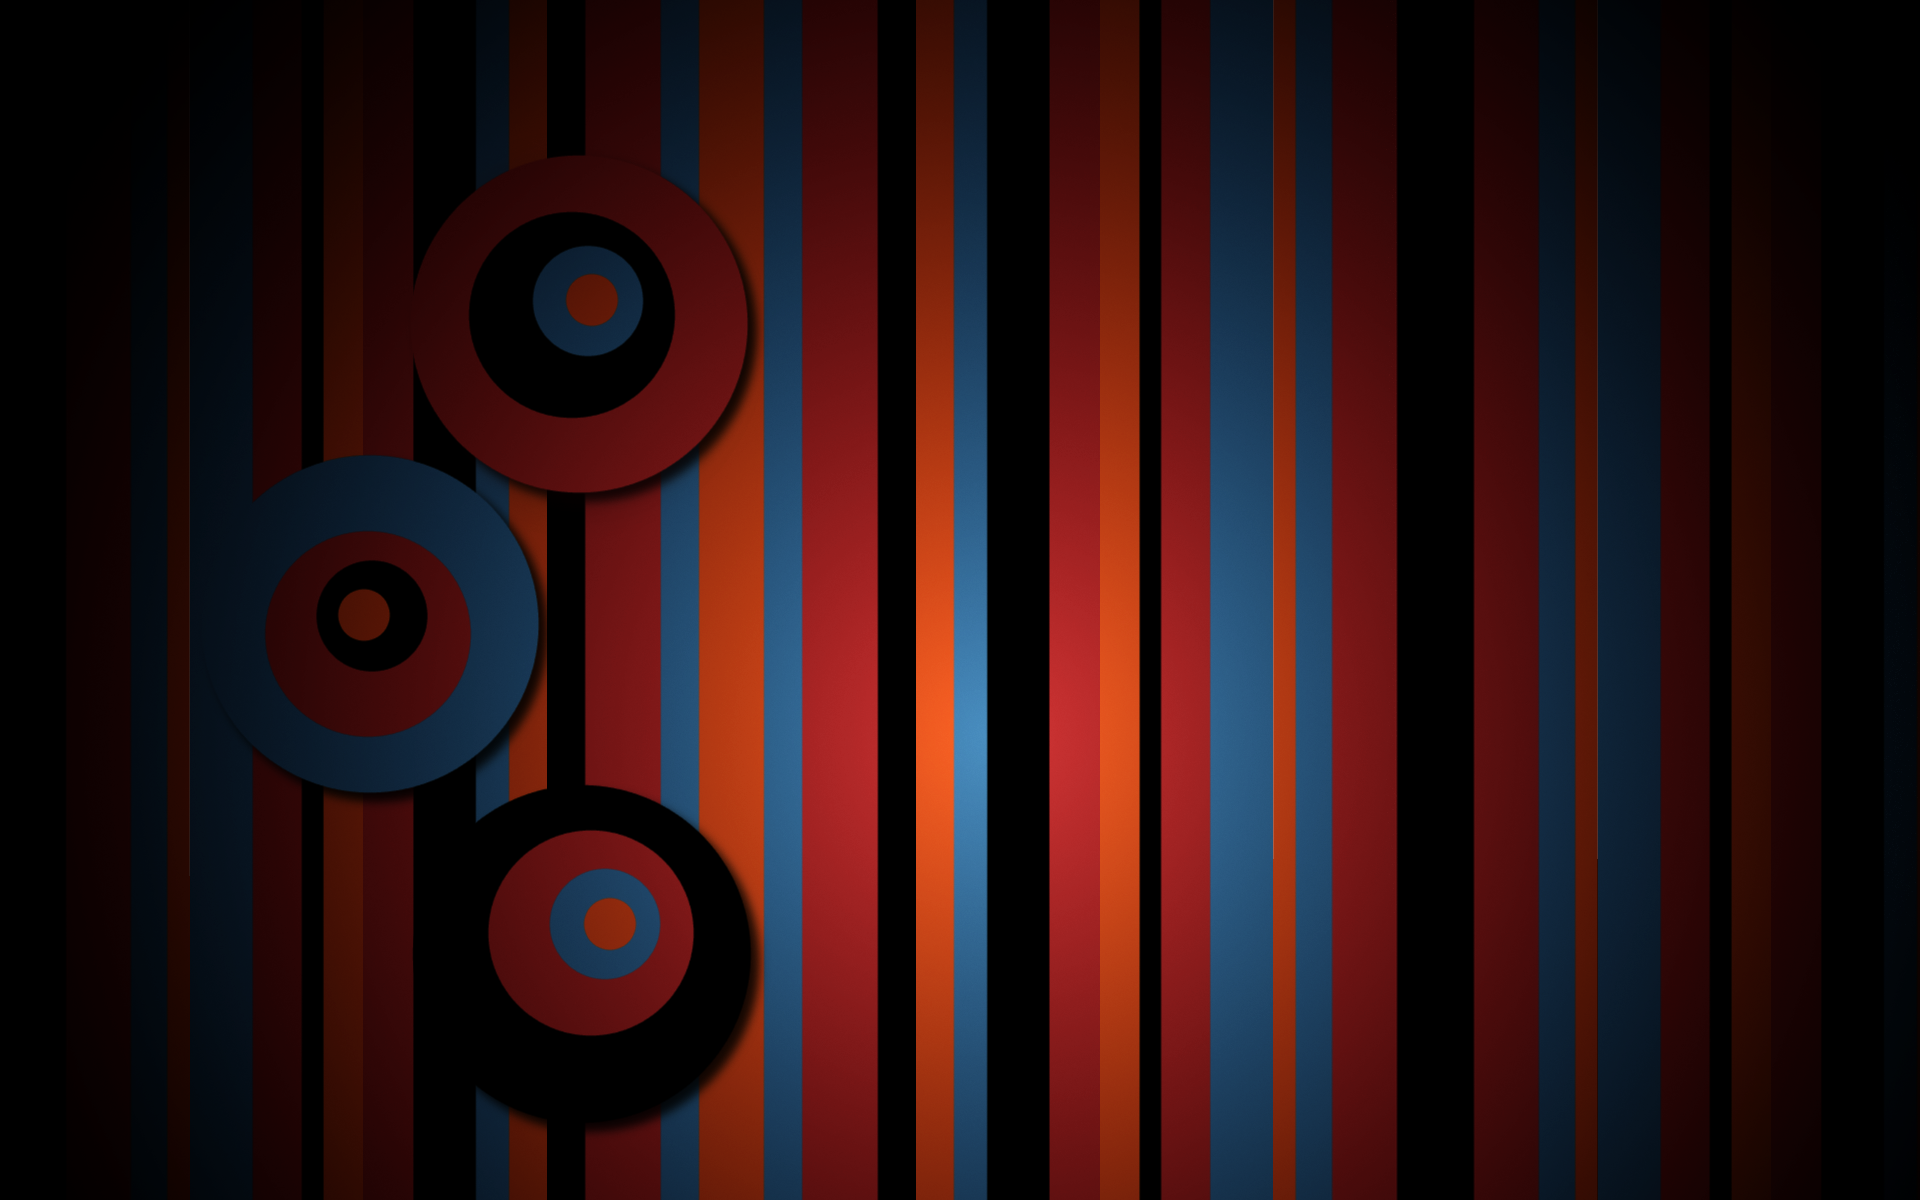 Stripes Circle Abstract Texture Pattern Wallpaper